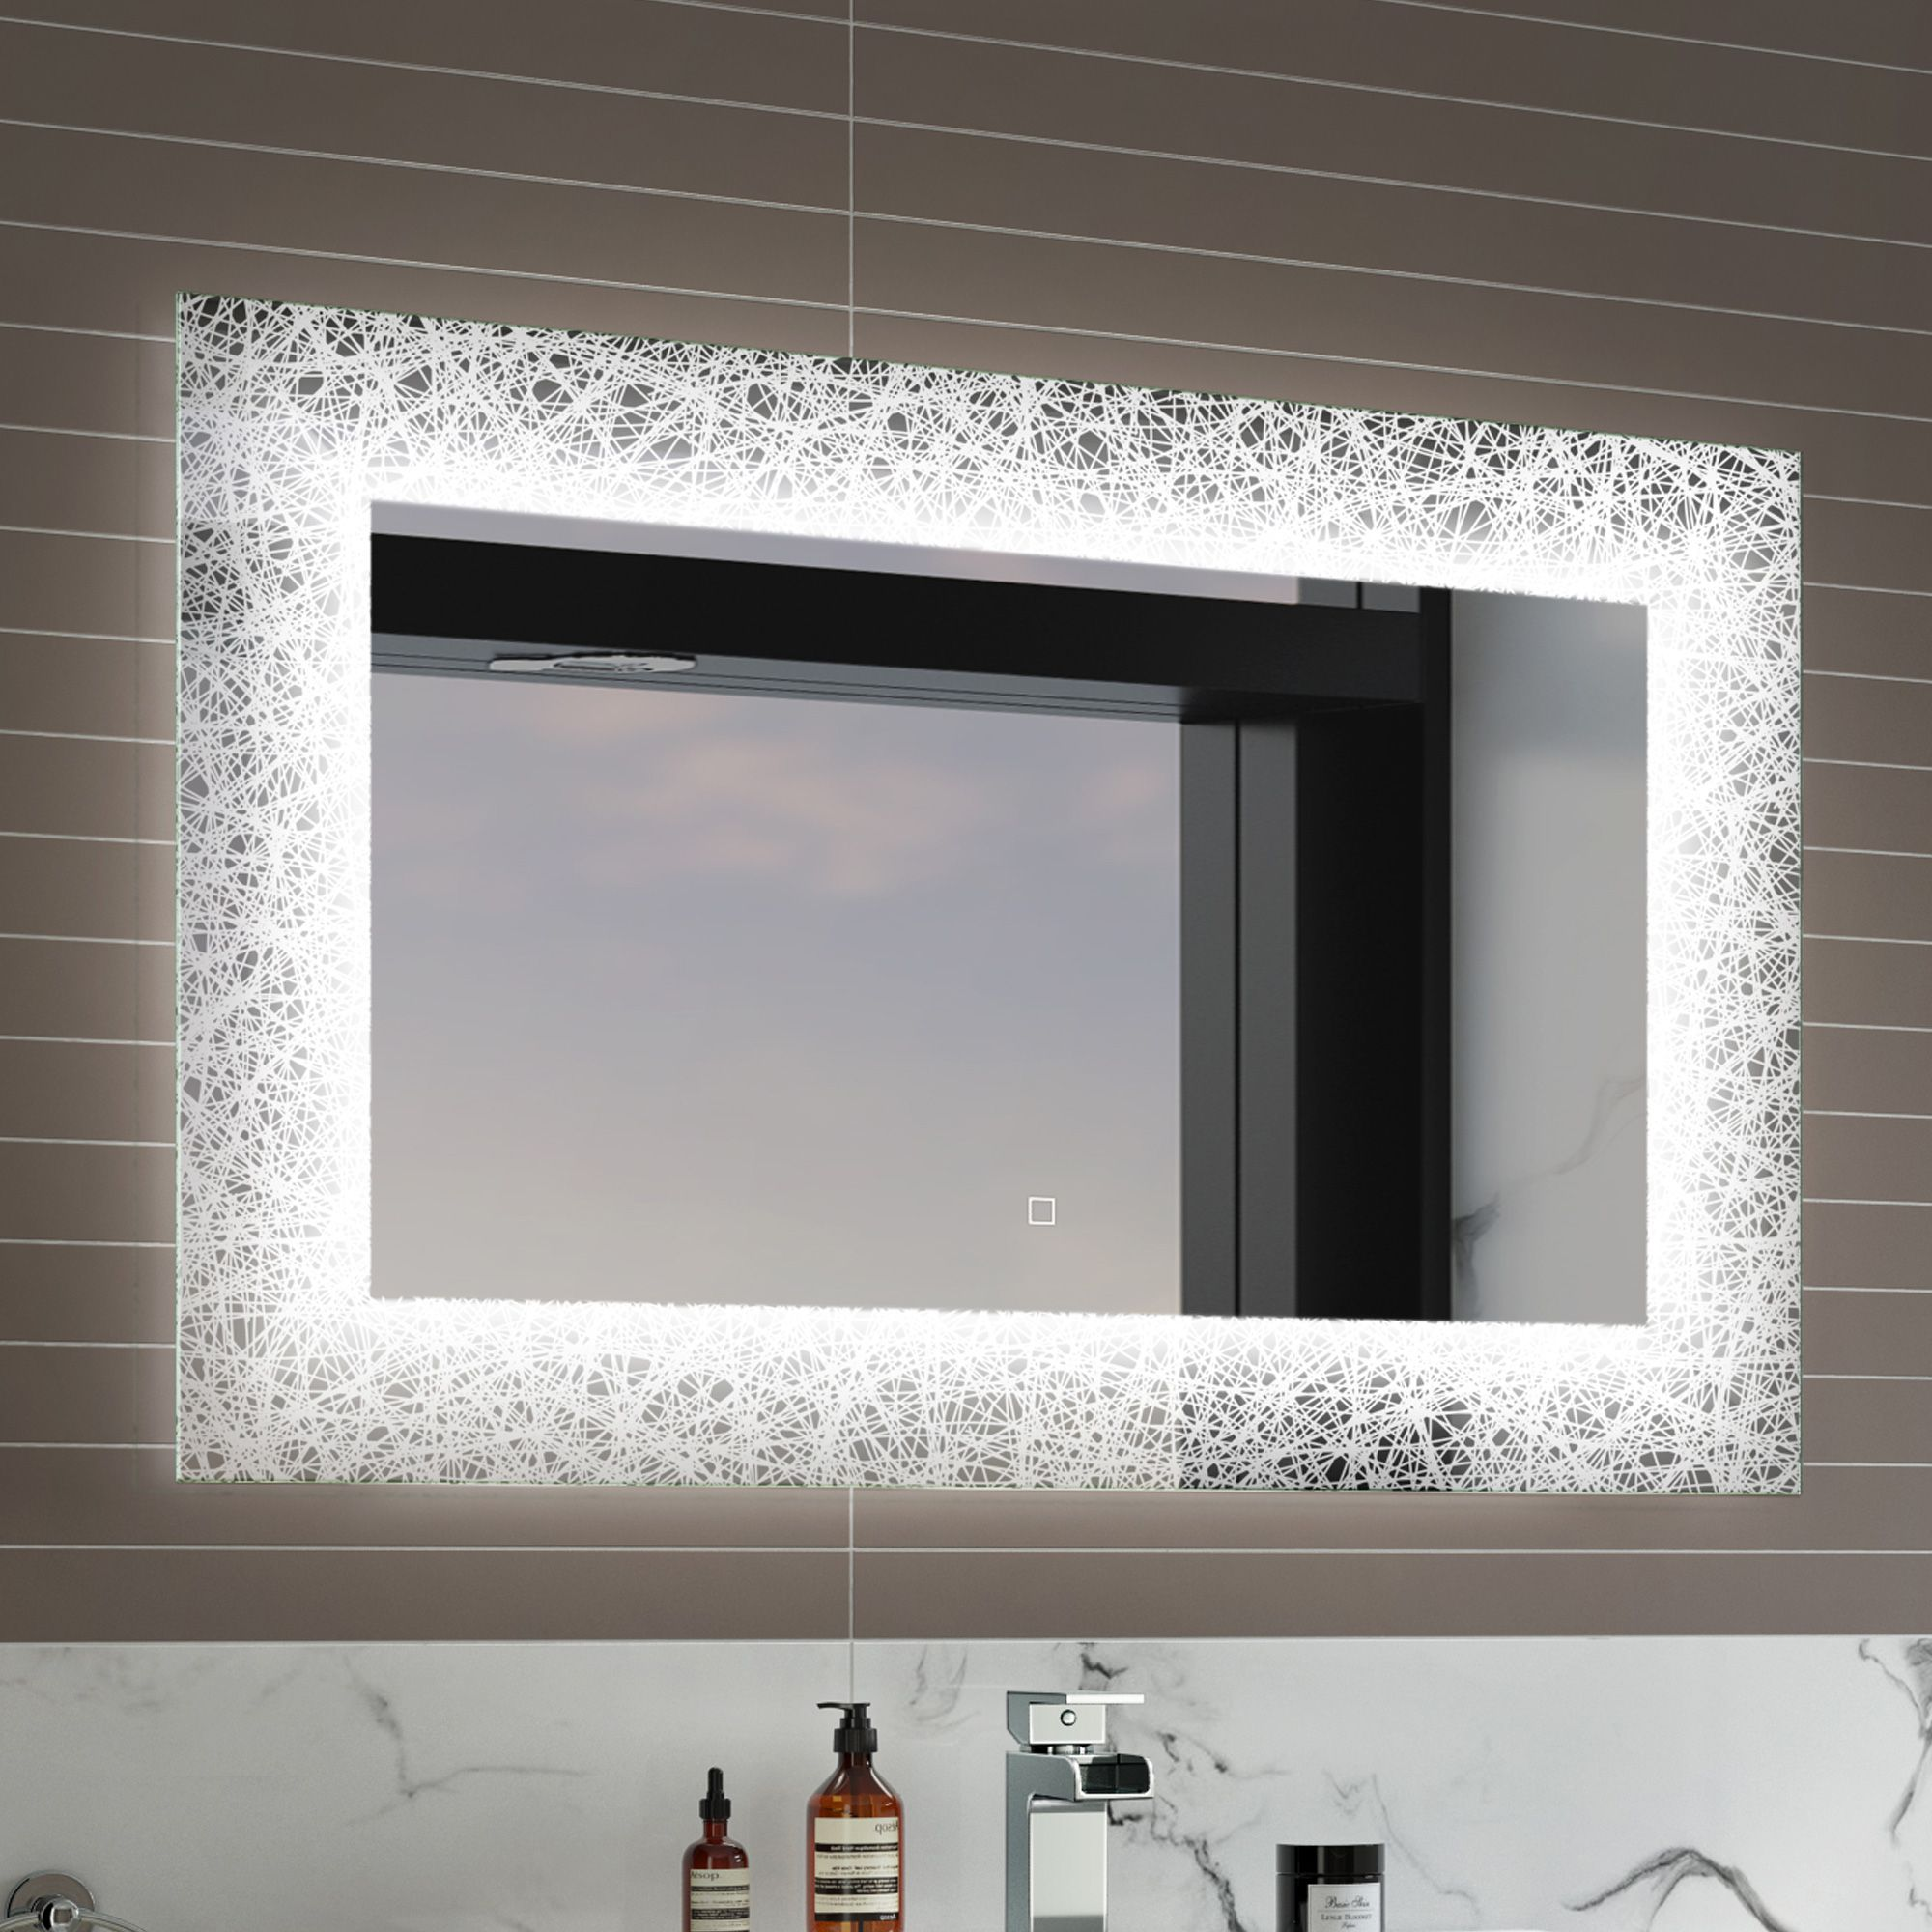 Franklite Wb559 Bathroom Over Mirror Light Franklite From